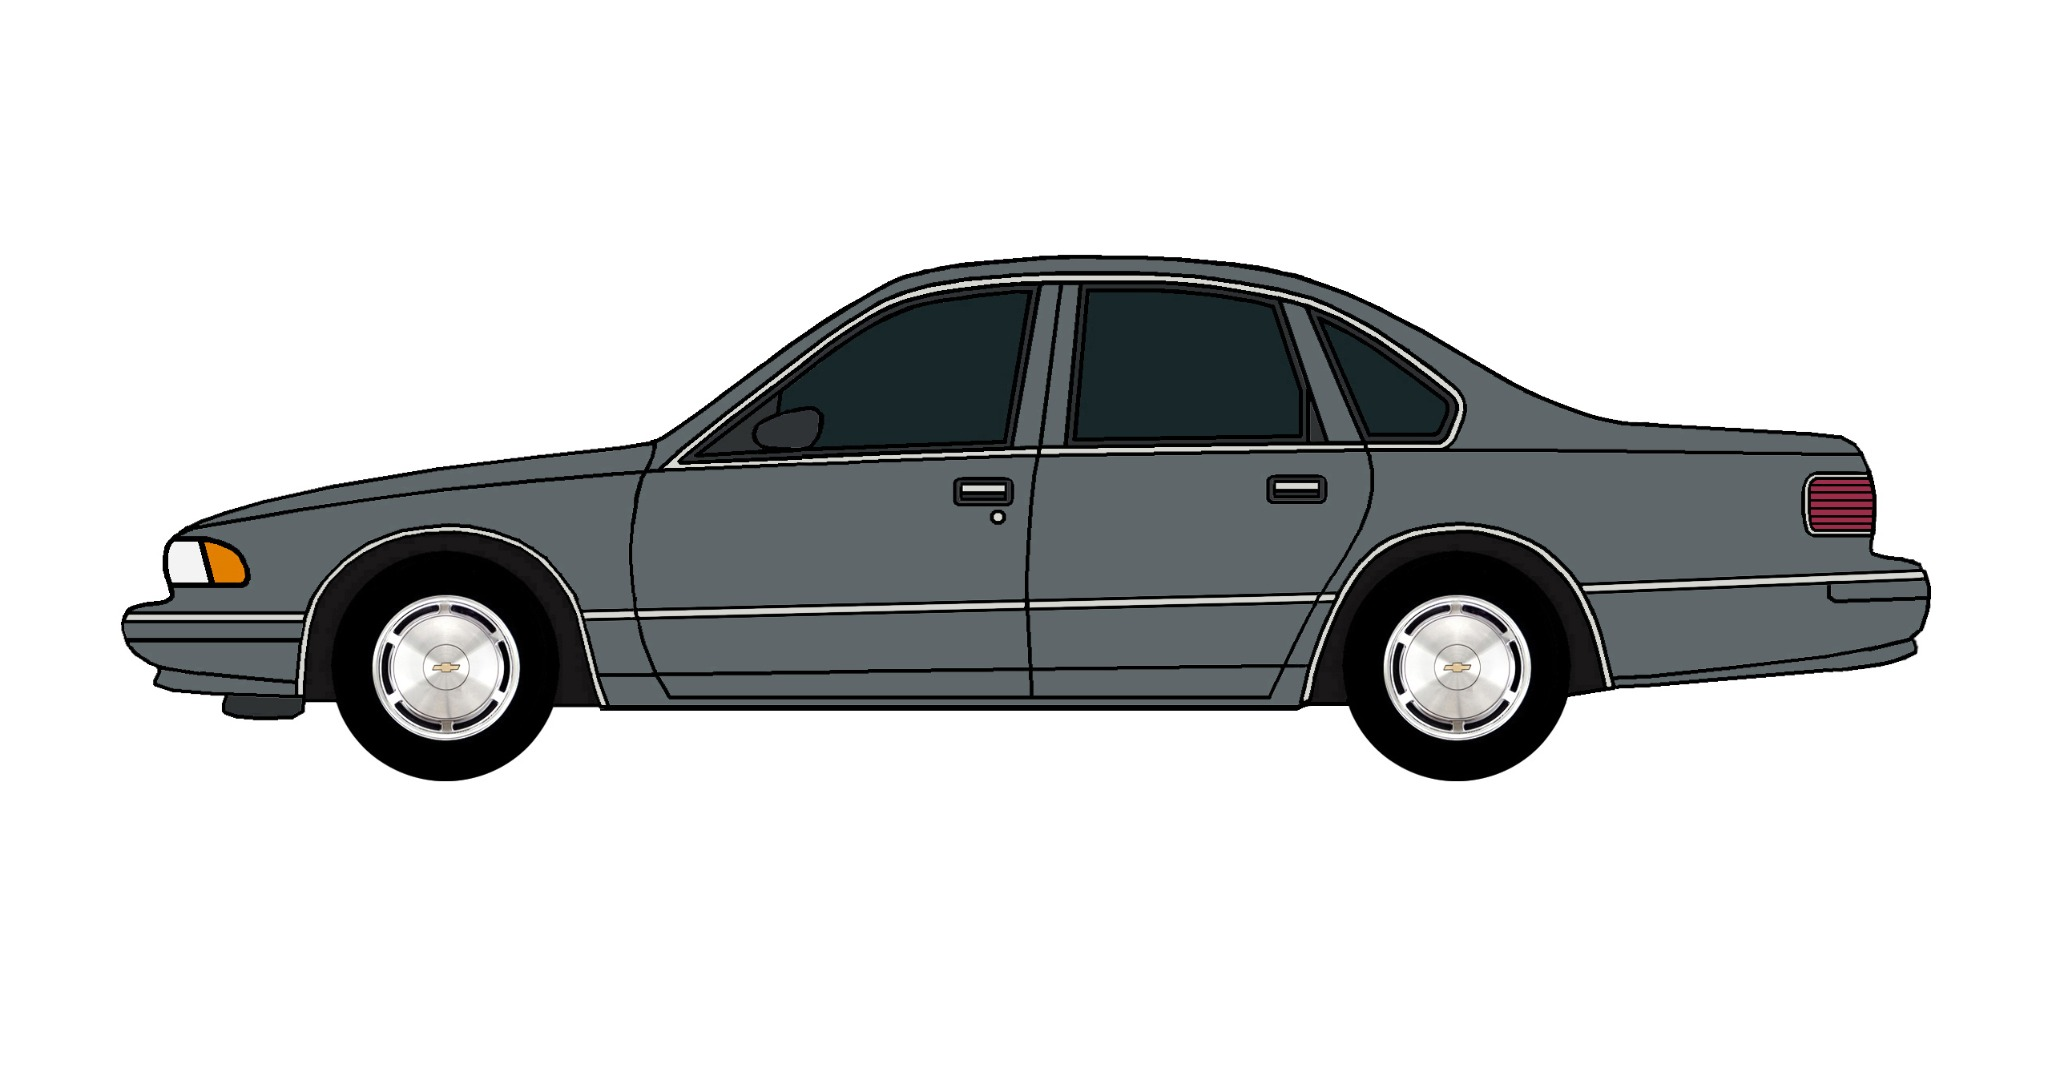 1995 Chevy Caprice CHARCOAL